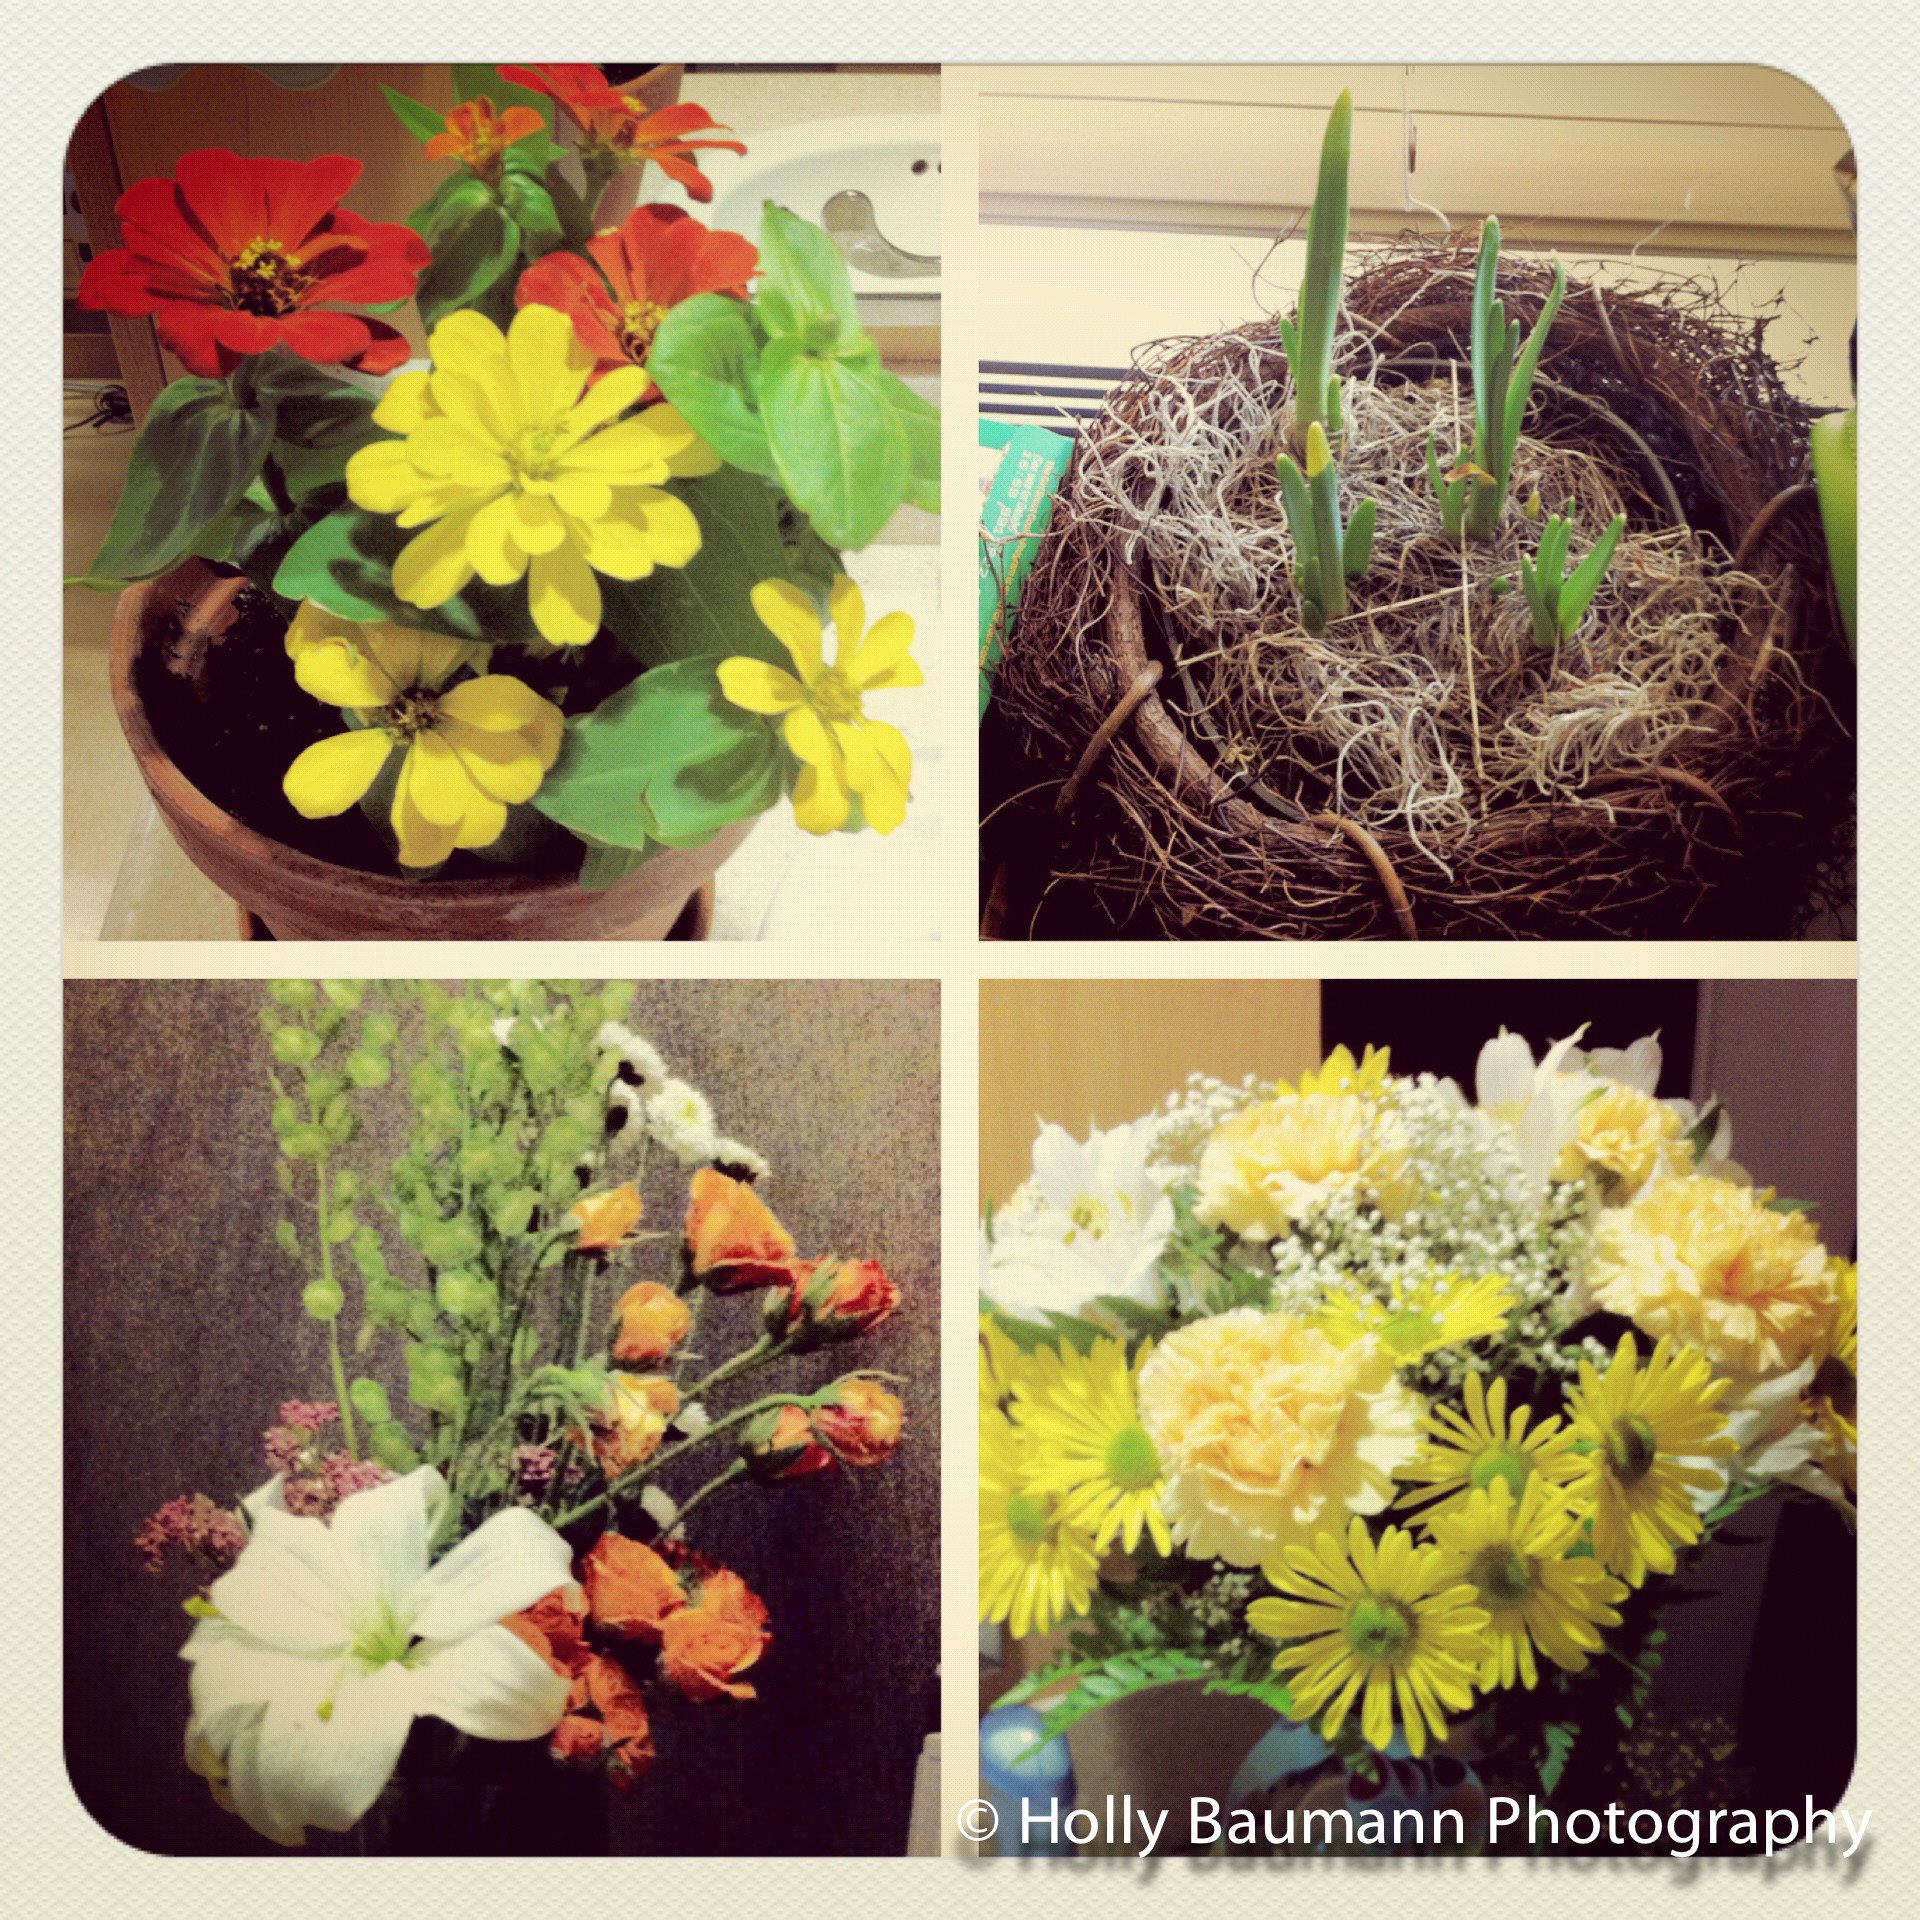 Some of the flowers